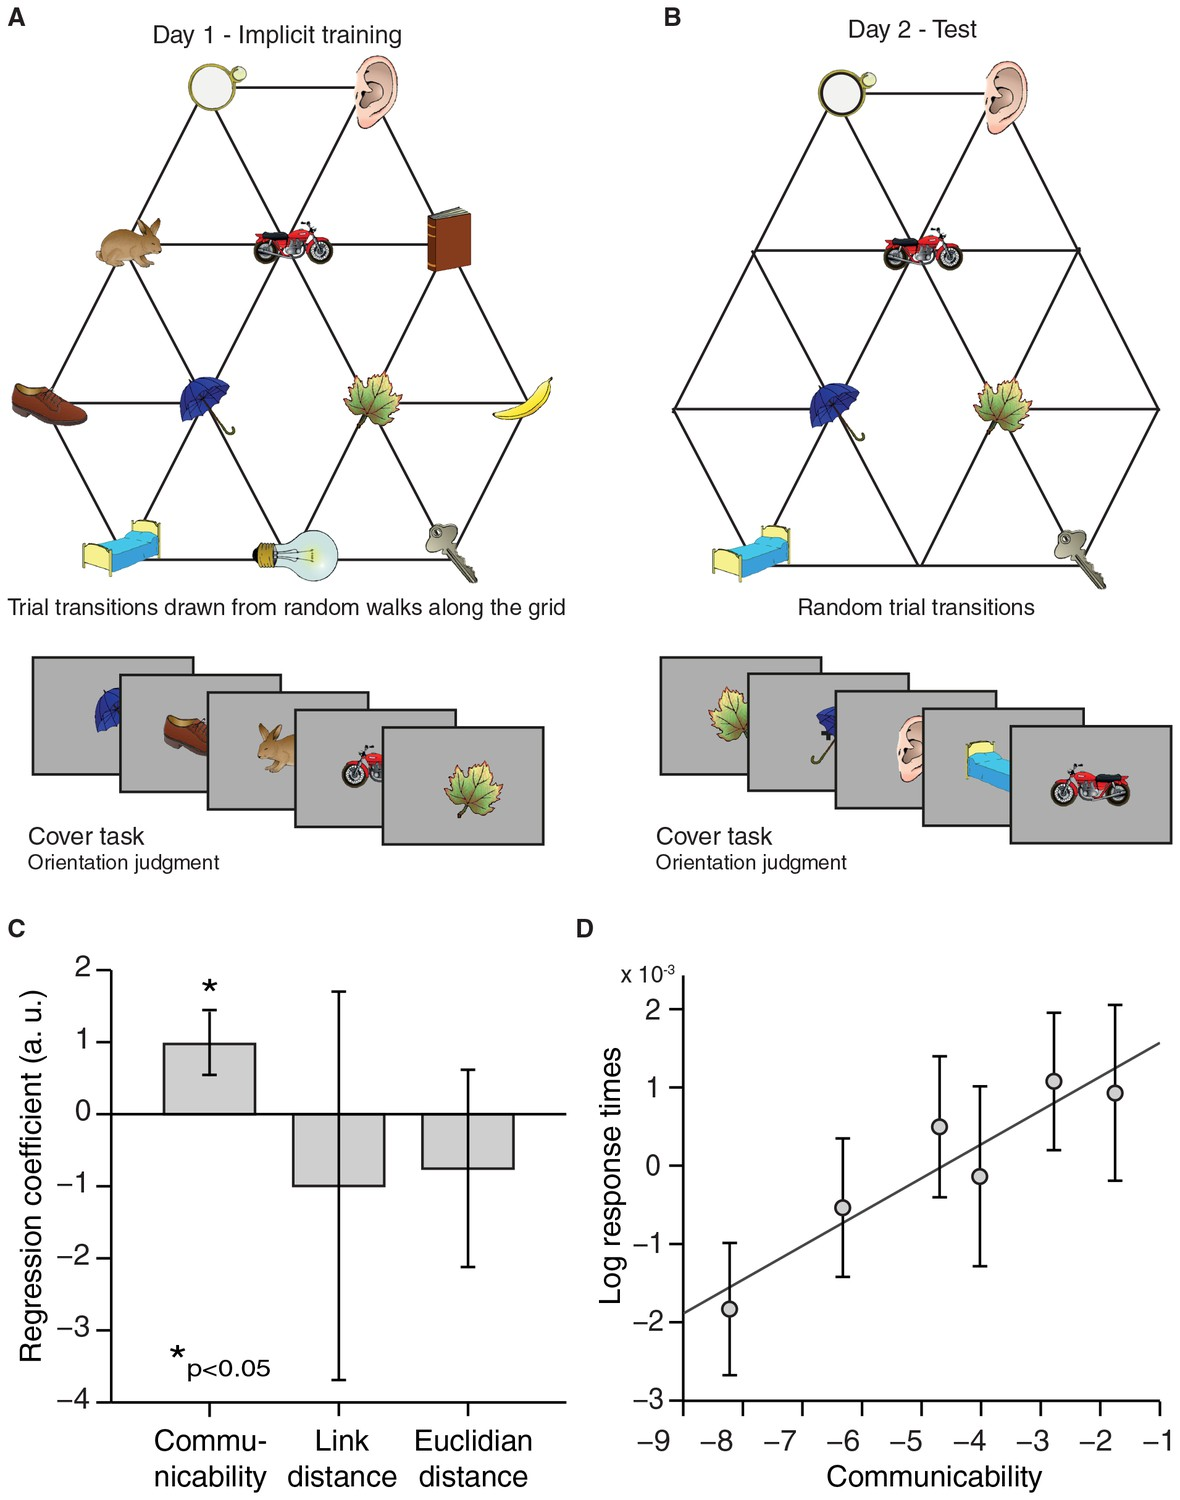 A Map Of Abstract Relational Knowledge In The Human Hippocampal Electric Circuits And Fields Nuffield Foundation Response Times Reflect Graph Structure